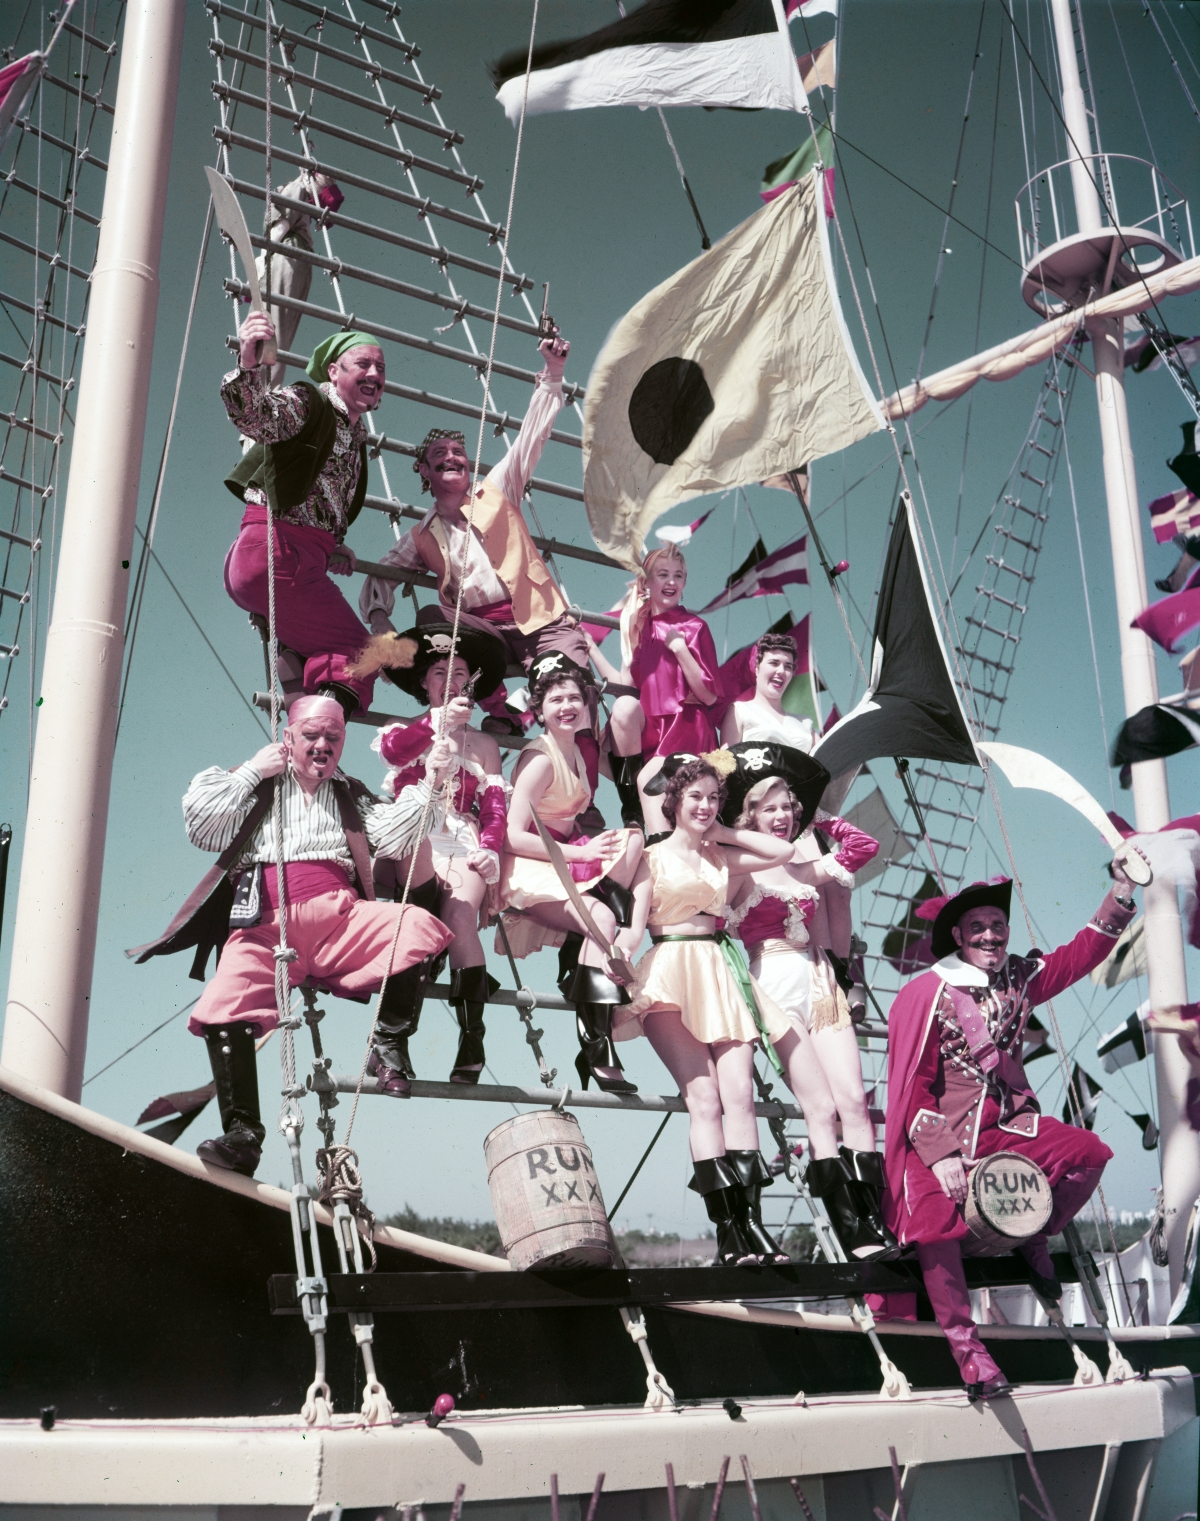 Costumed participants aboard ship at the Gasparilla festival in Tampa.